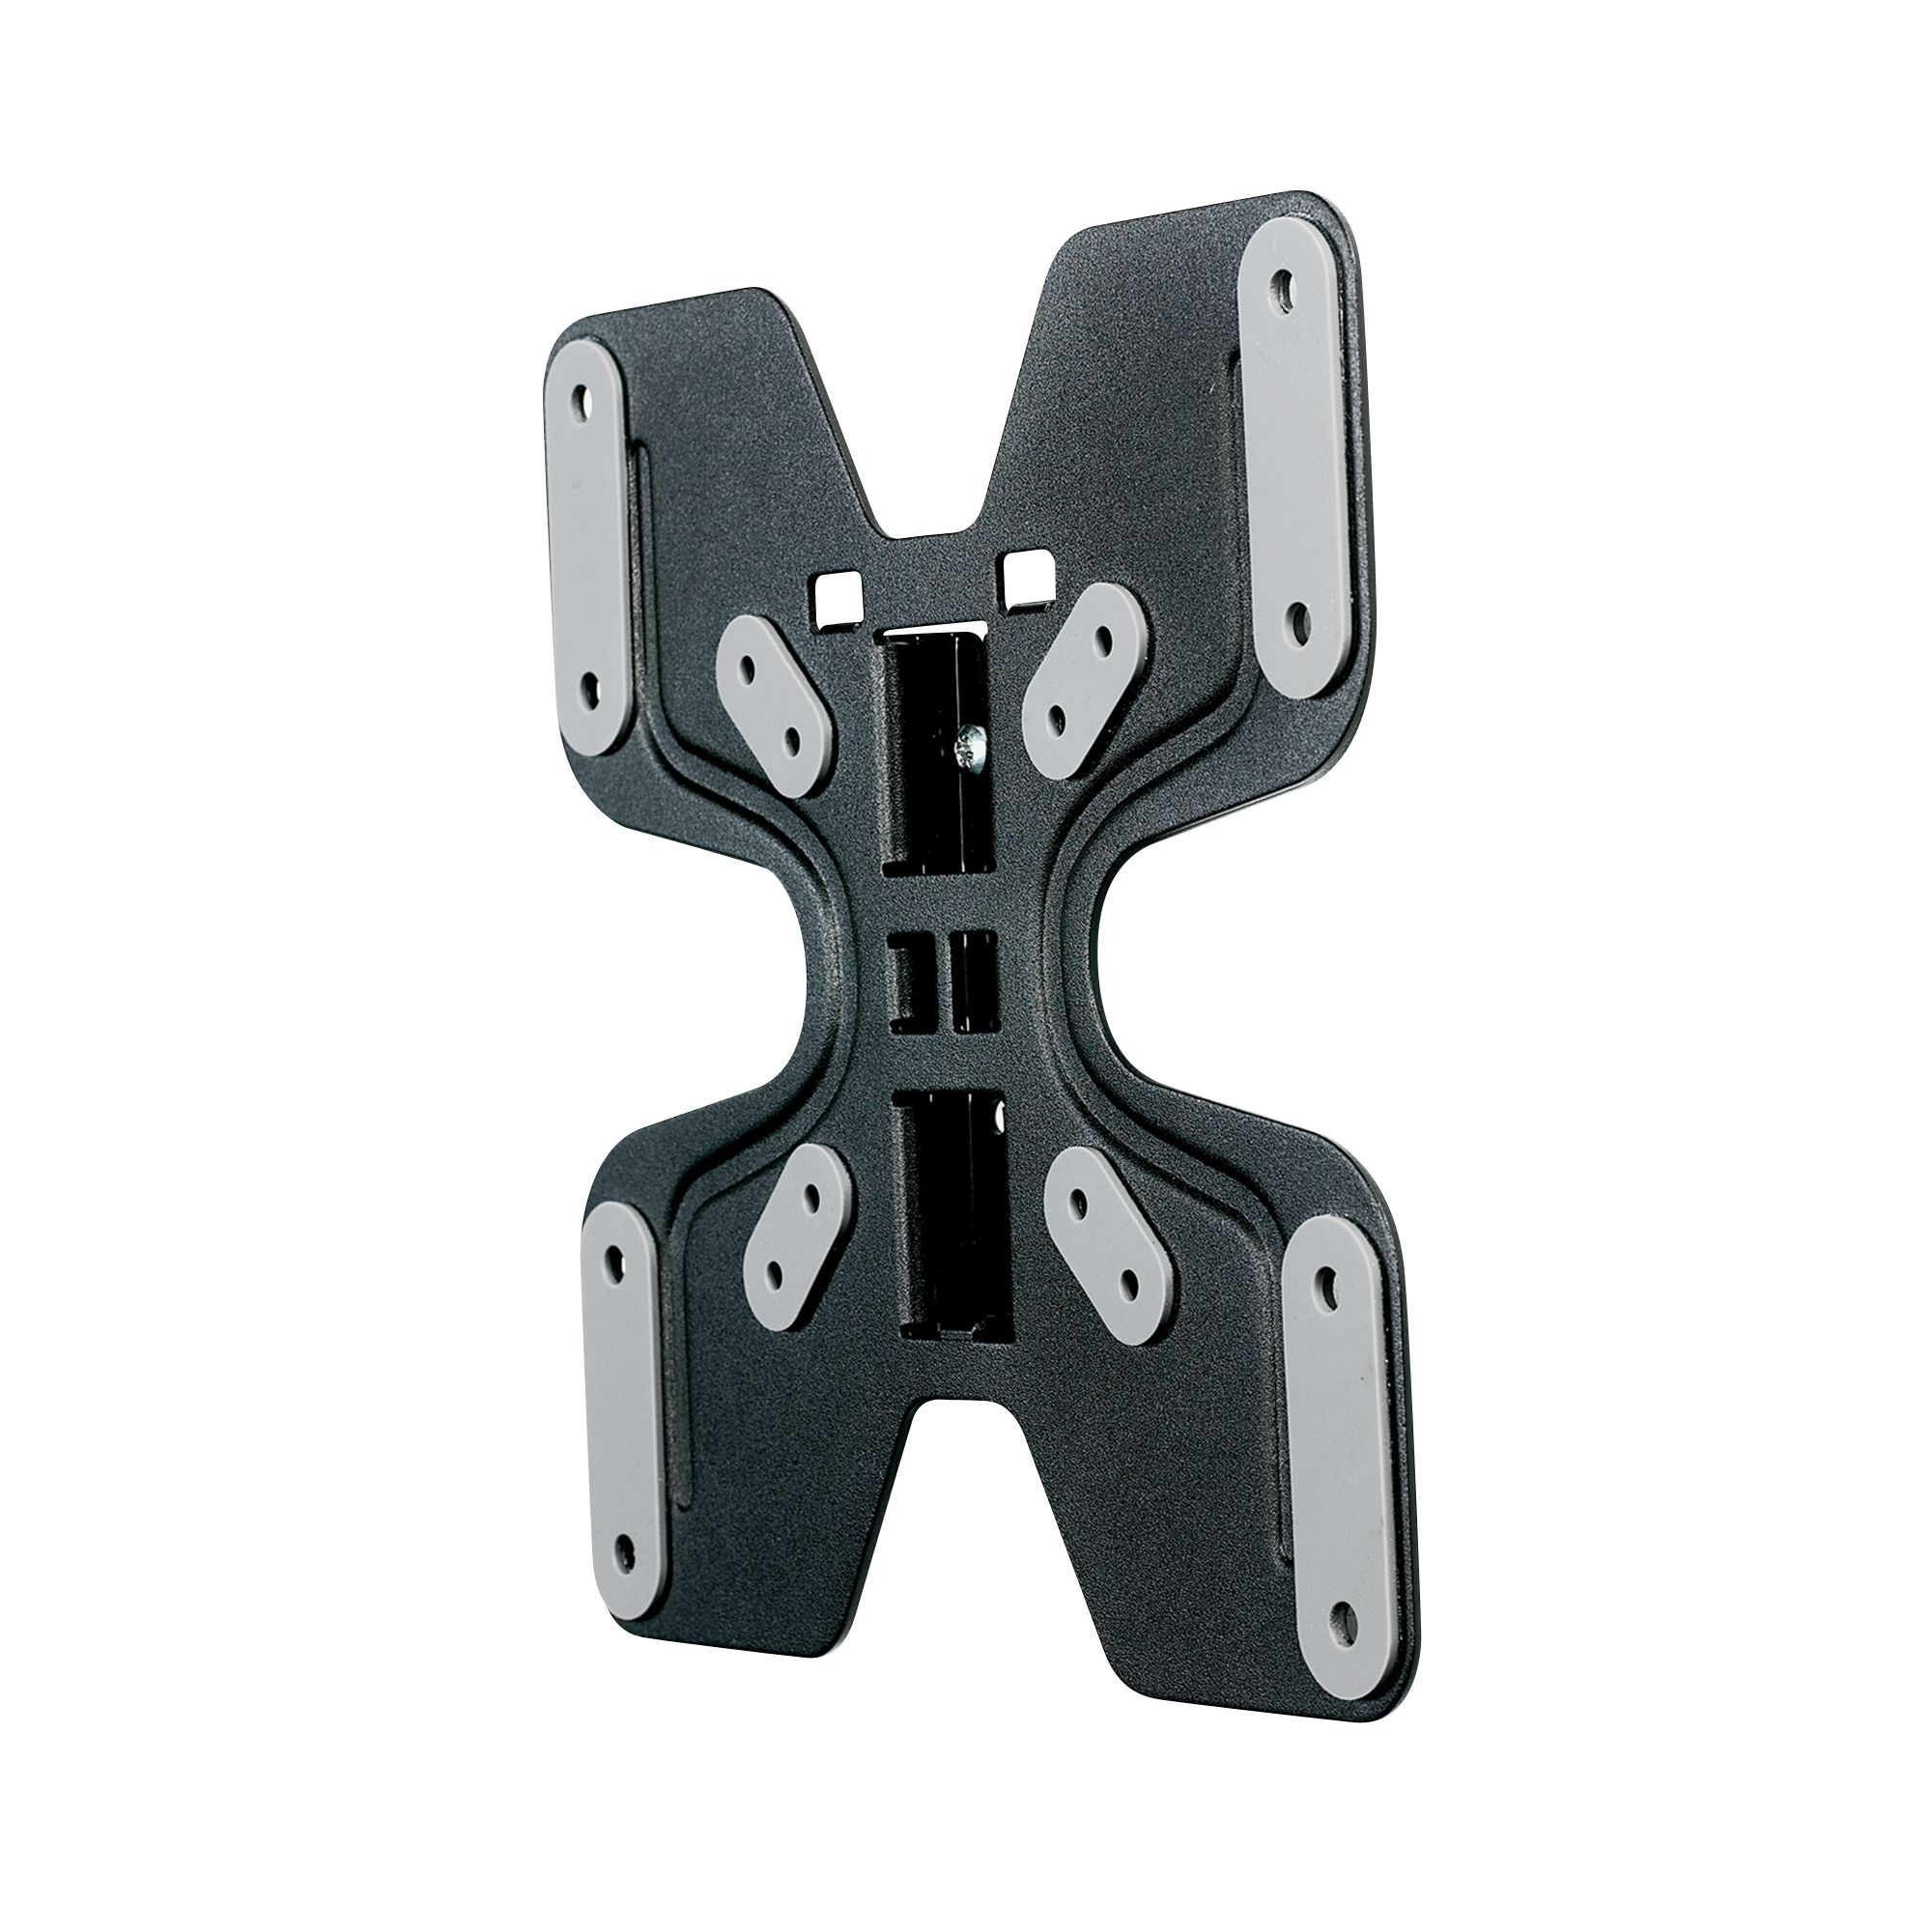 Ross Black Fixed Tv Mounting Bracket 23-37 Inches